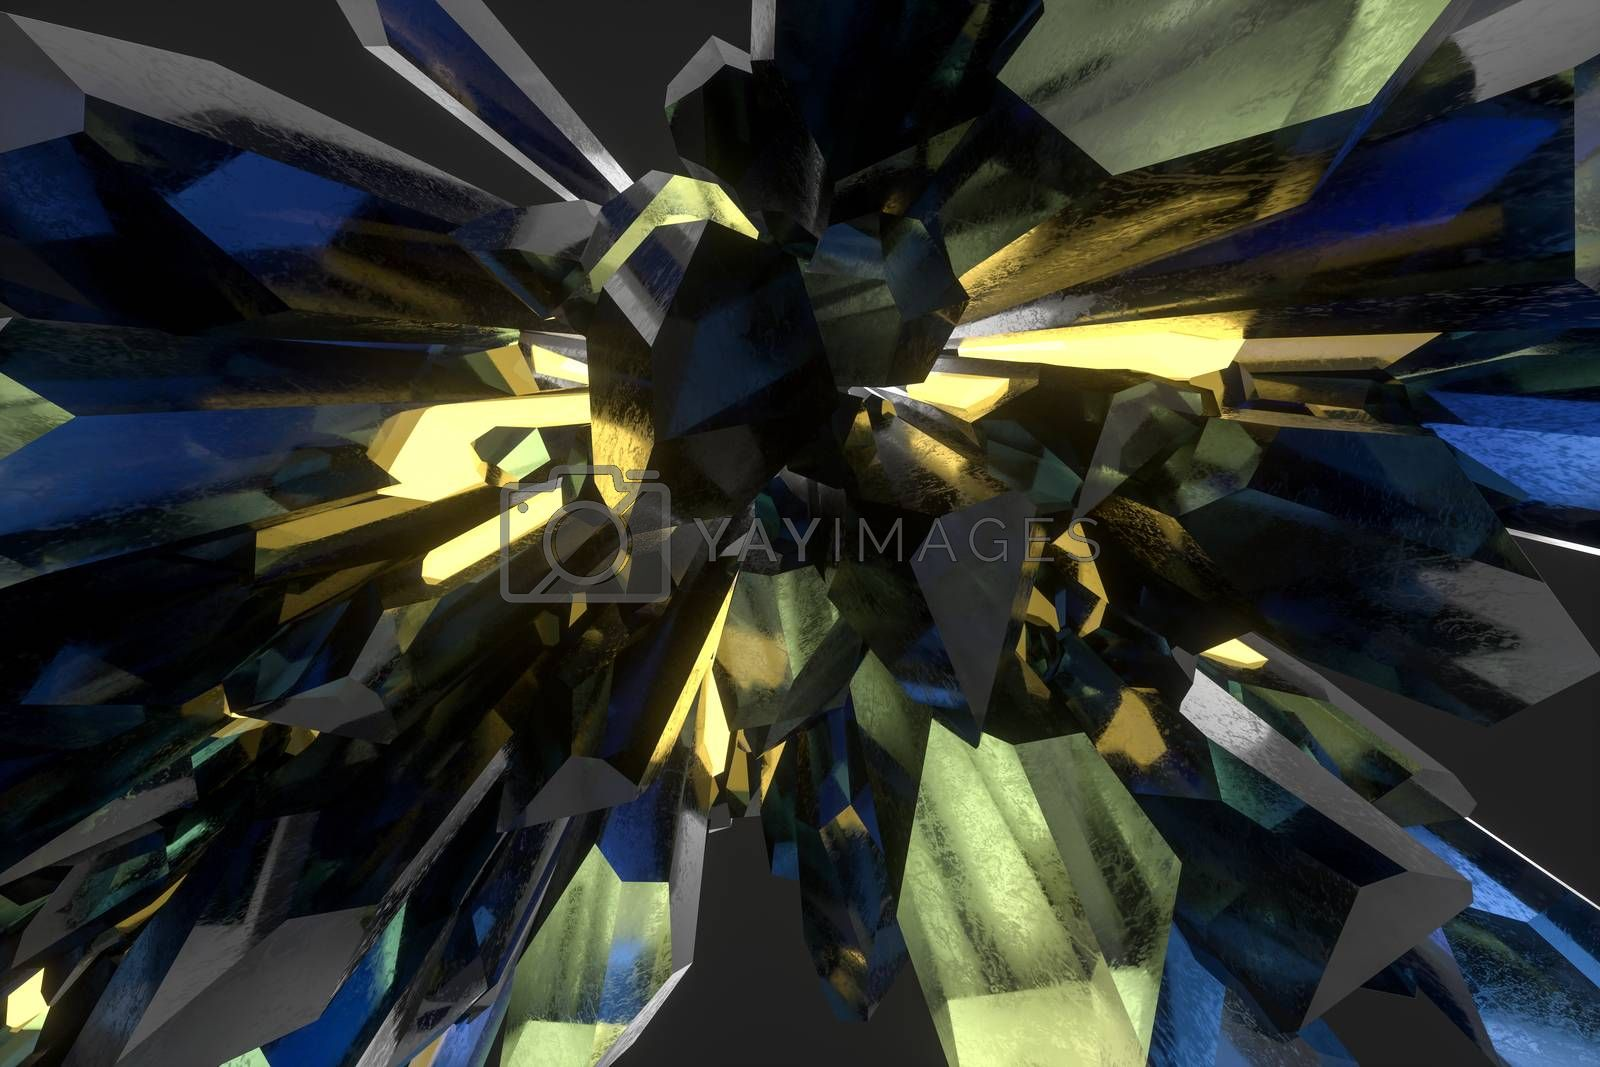 A cluster of precision-cut magic crystal, science fiction and magic theme, 3d rendering. by vinkfan